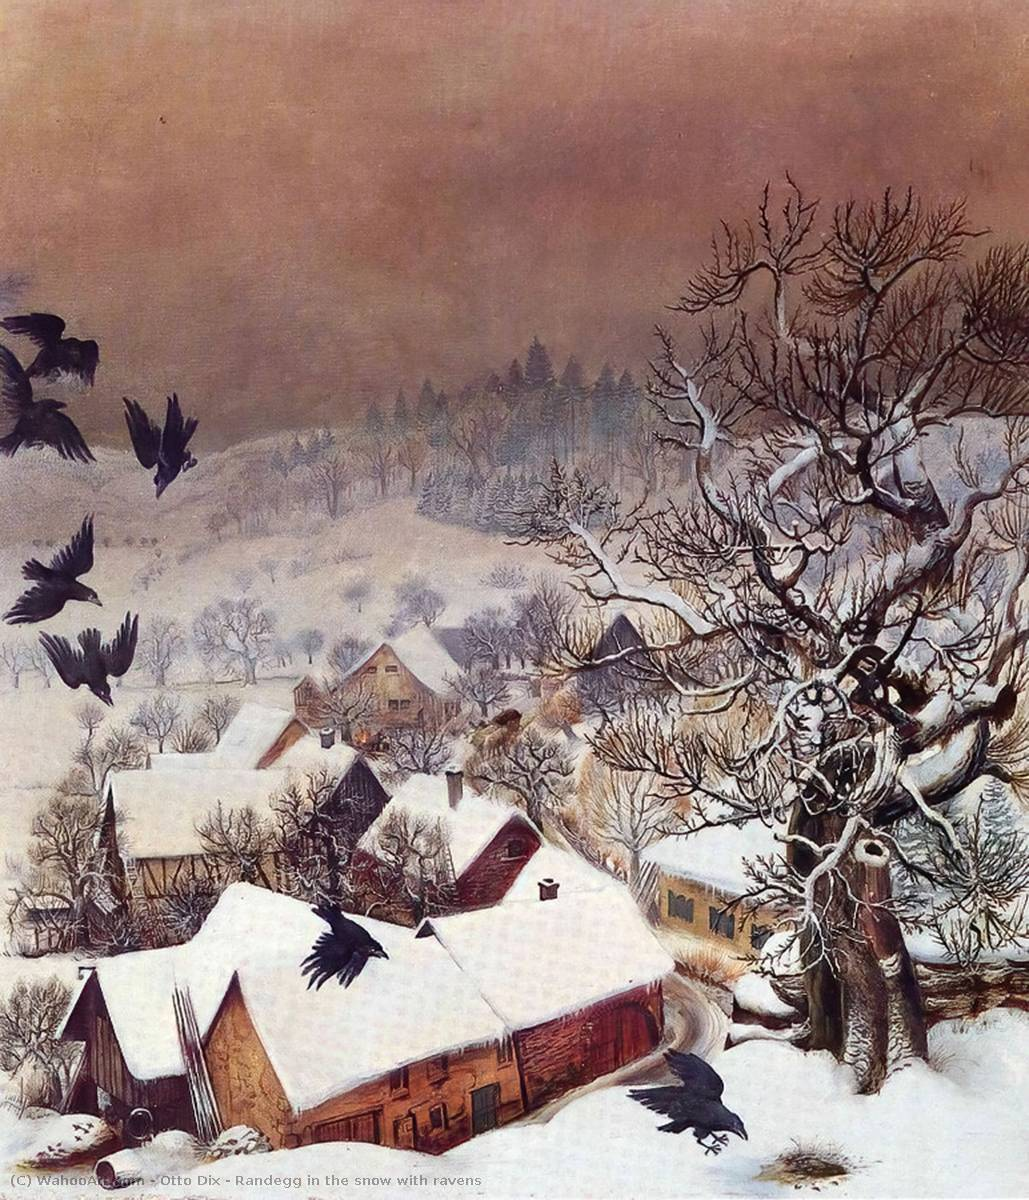 Randegg in the snow with ravens by Otto Dix (1891-1969, Germany) | Oil Painting | WahooArt.com